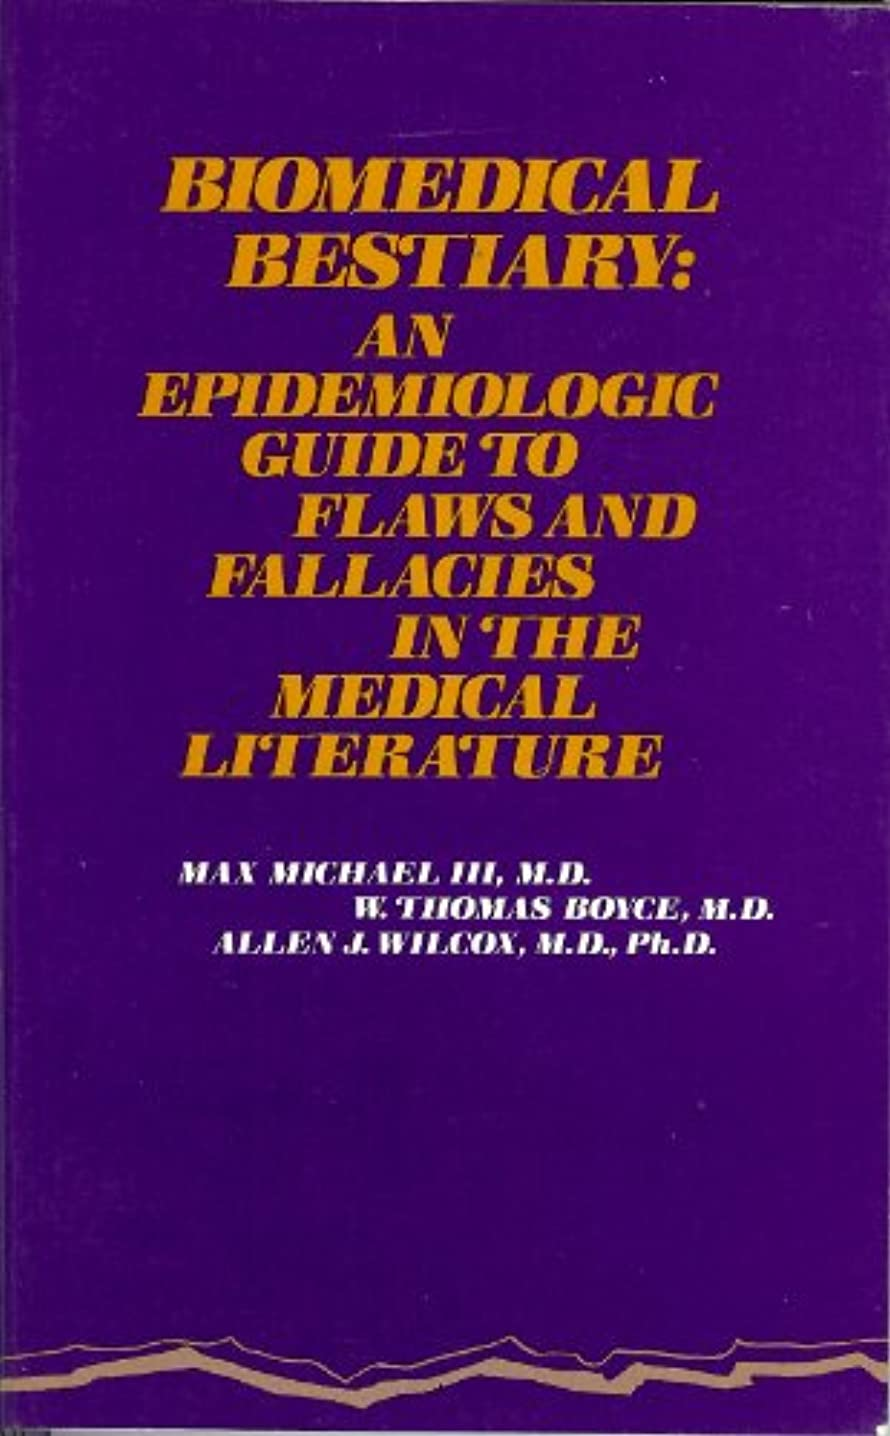 核列挙する小麦粉Biomedical Bestiary: An Epidemiologic Guide to Flaws and Fallacies in the Medical Literature